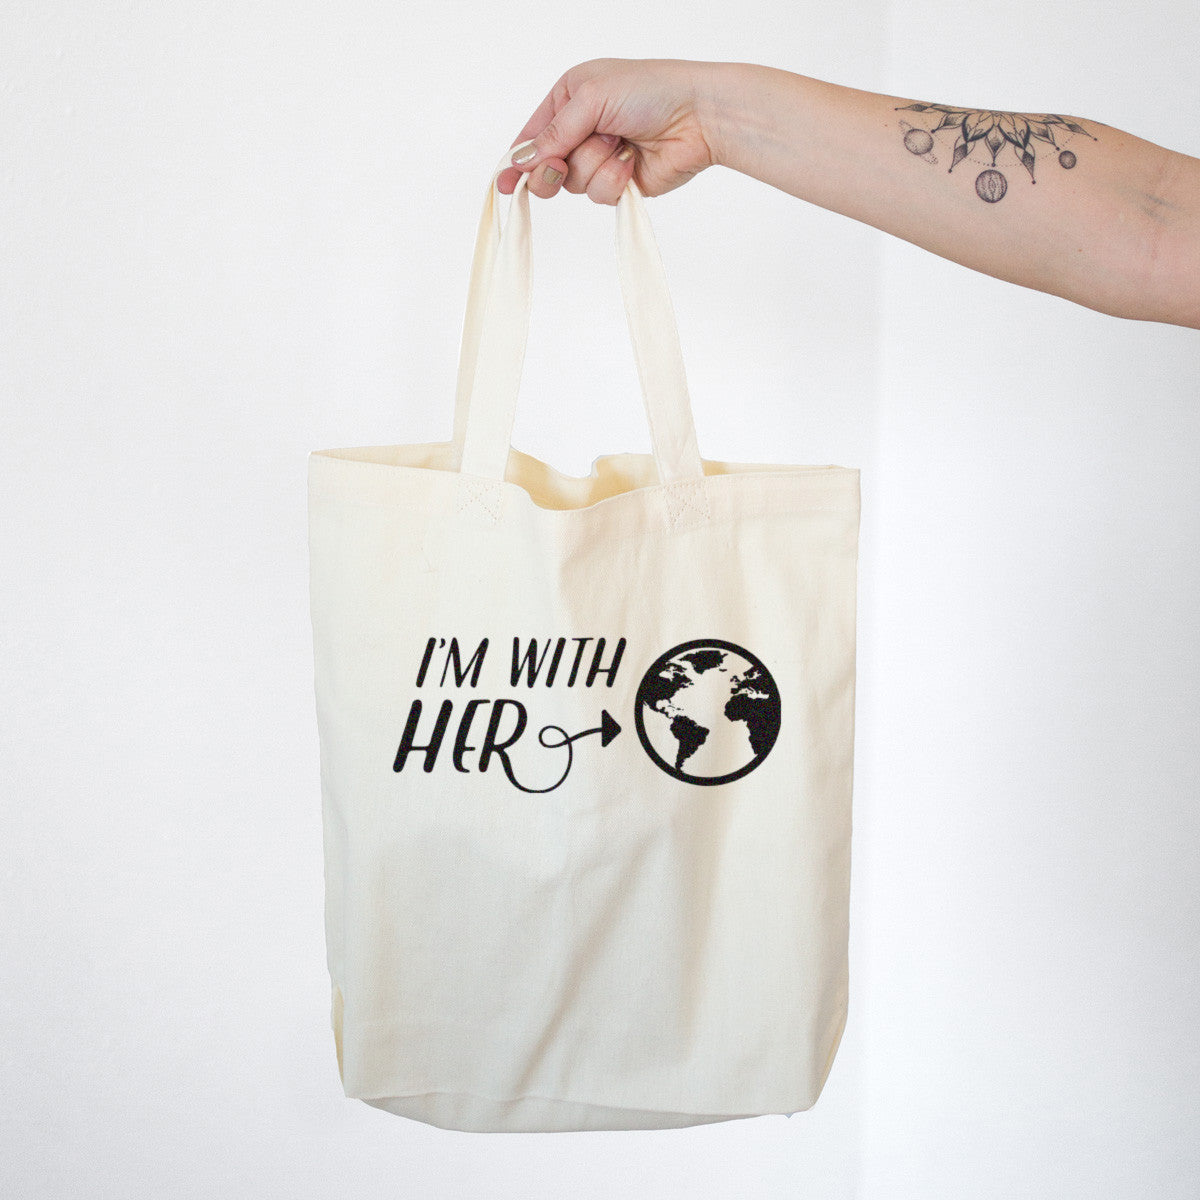 I'm With Her Mother Earth Cotton Tote Bag